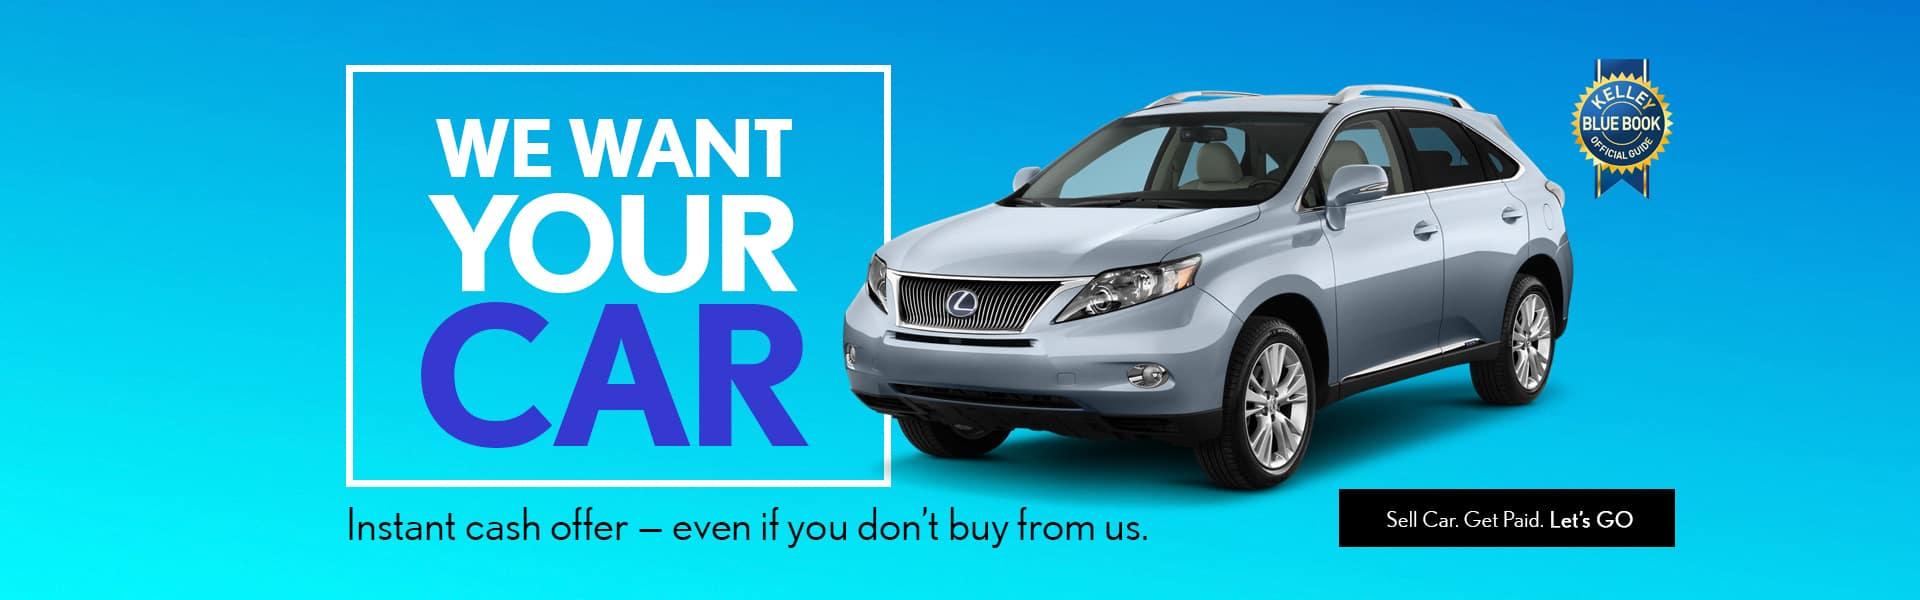 We-Want-Your-Car–Lexus-Banner